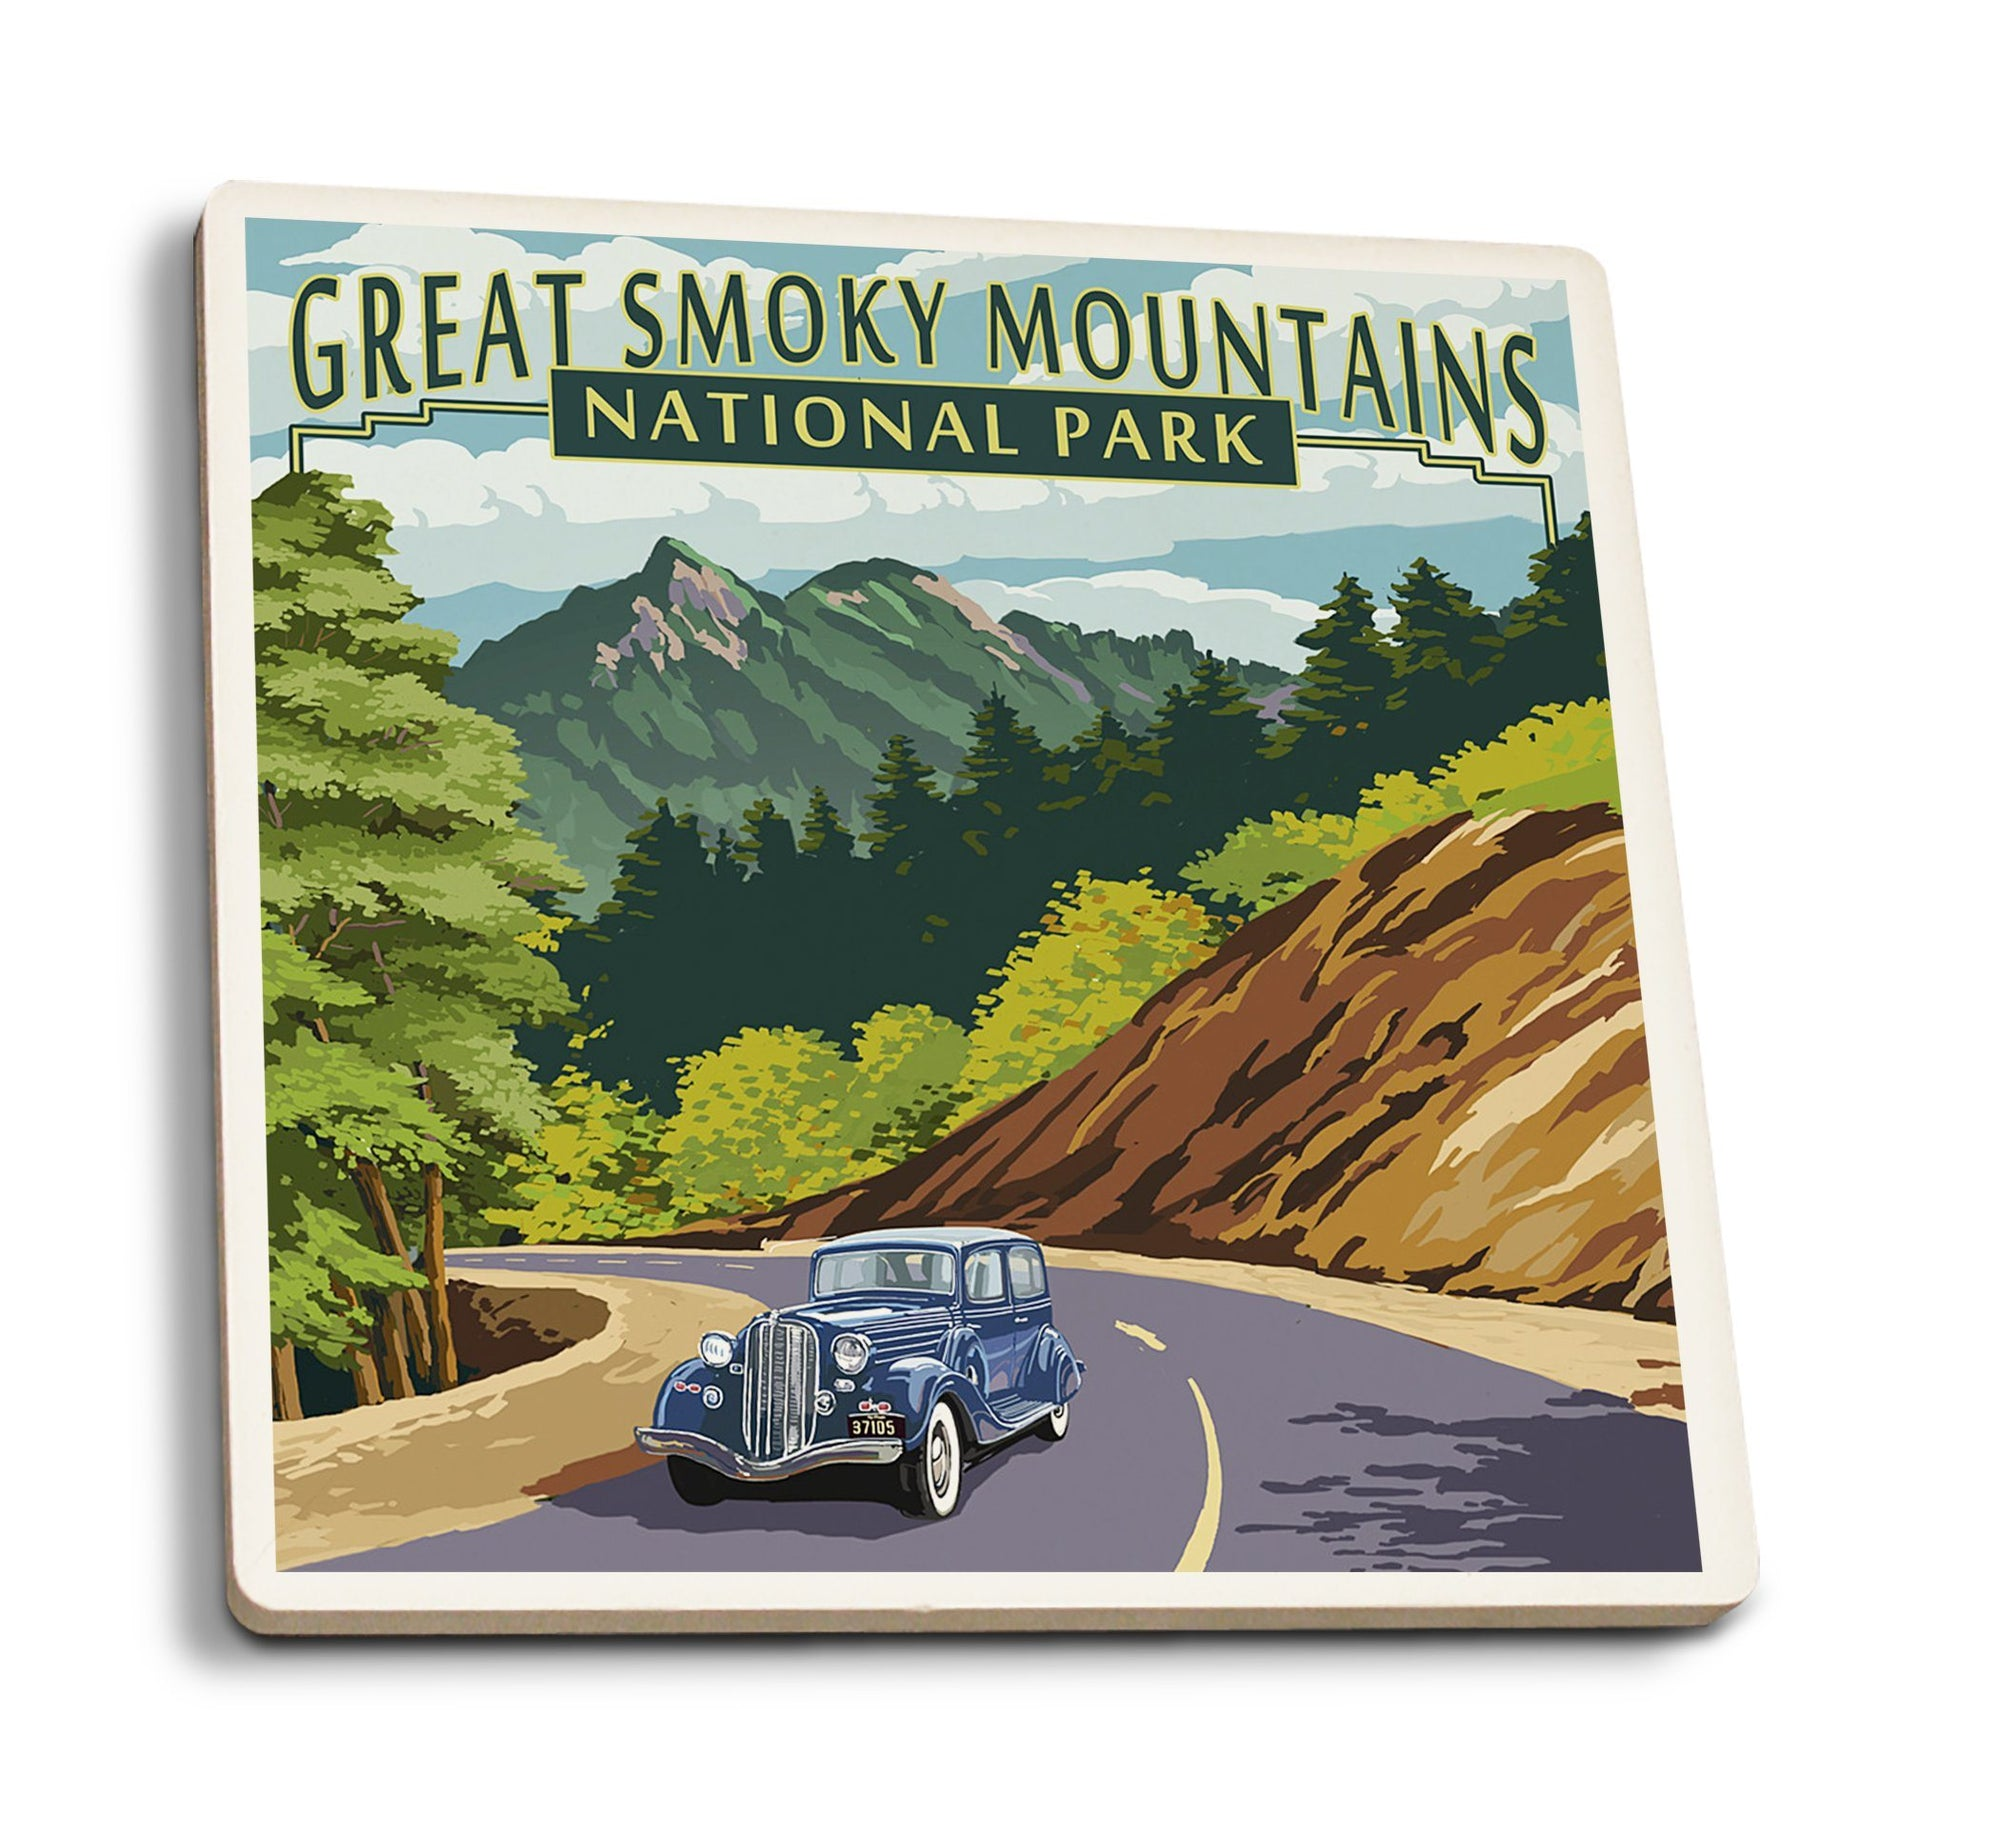 Coaster (Great Smoky Mountains National Park, Tennesseee - Chimney Tops & Road - Lantern Press Artwork) Coaster Nightingale Boutique Coaster Pack